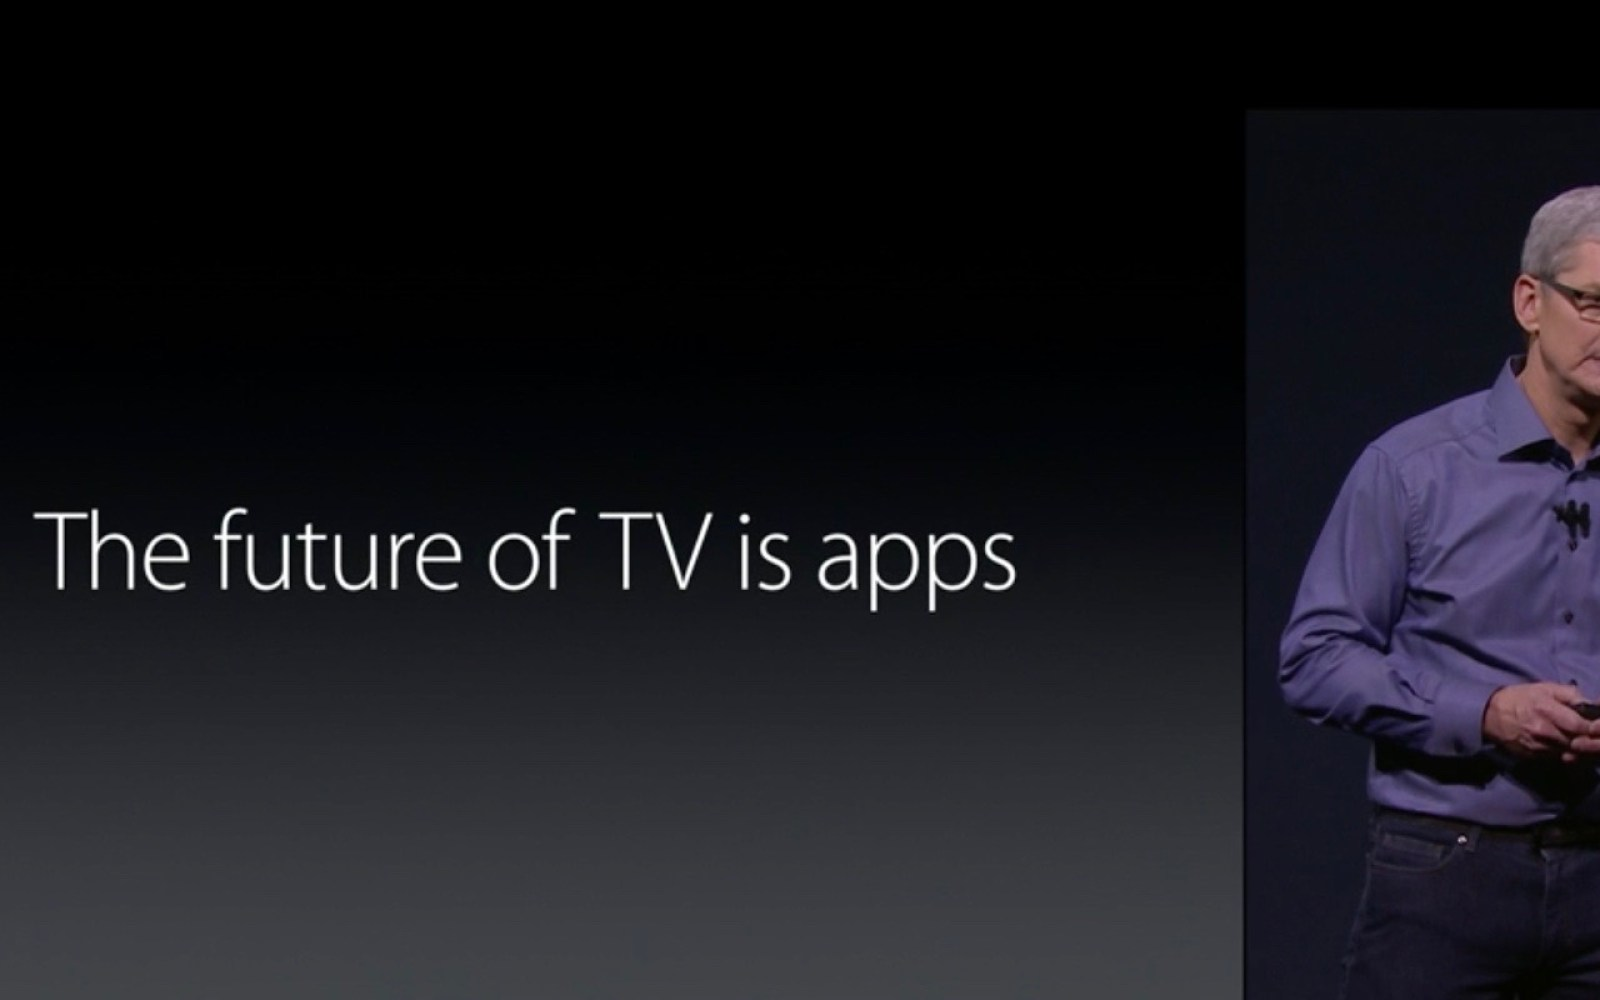 Apple announces first original TV show focused on the 'app economy' with music artist Will.i.am